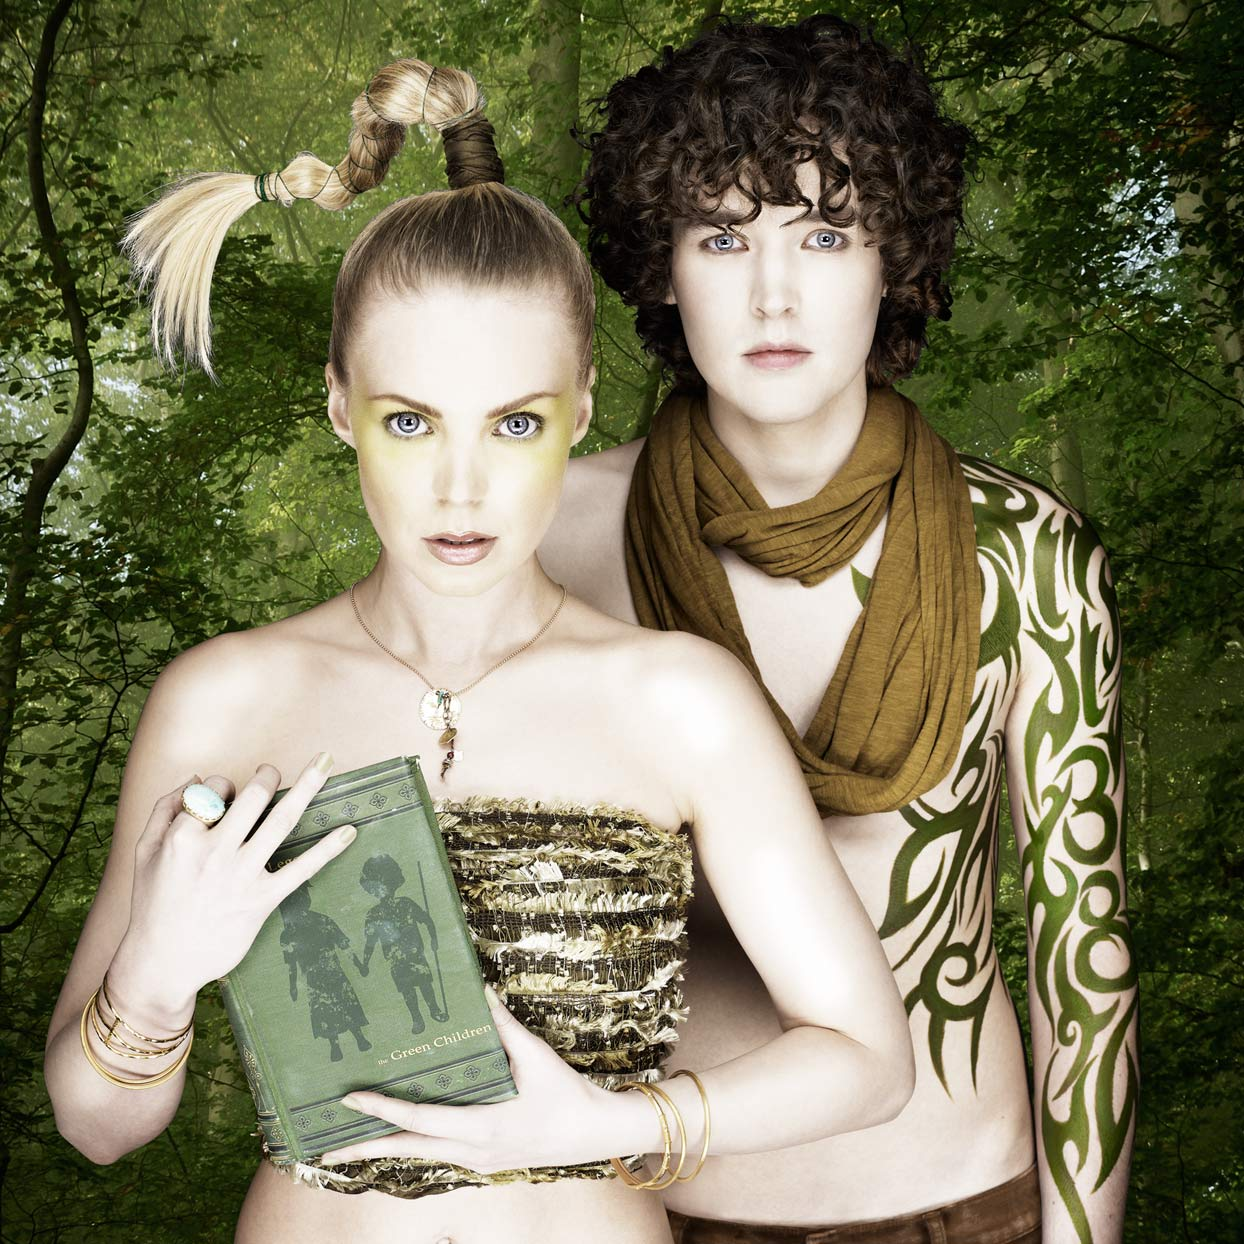 Mark DeLong - Celebrity Photographer - Actor and actress in fantasy clothing clutching book.